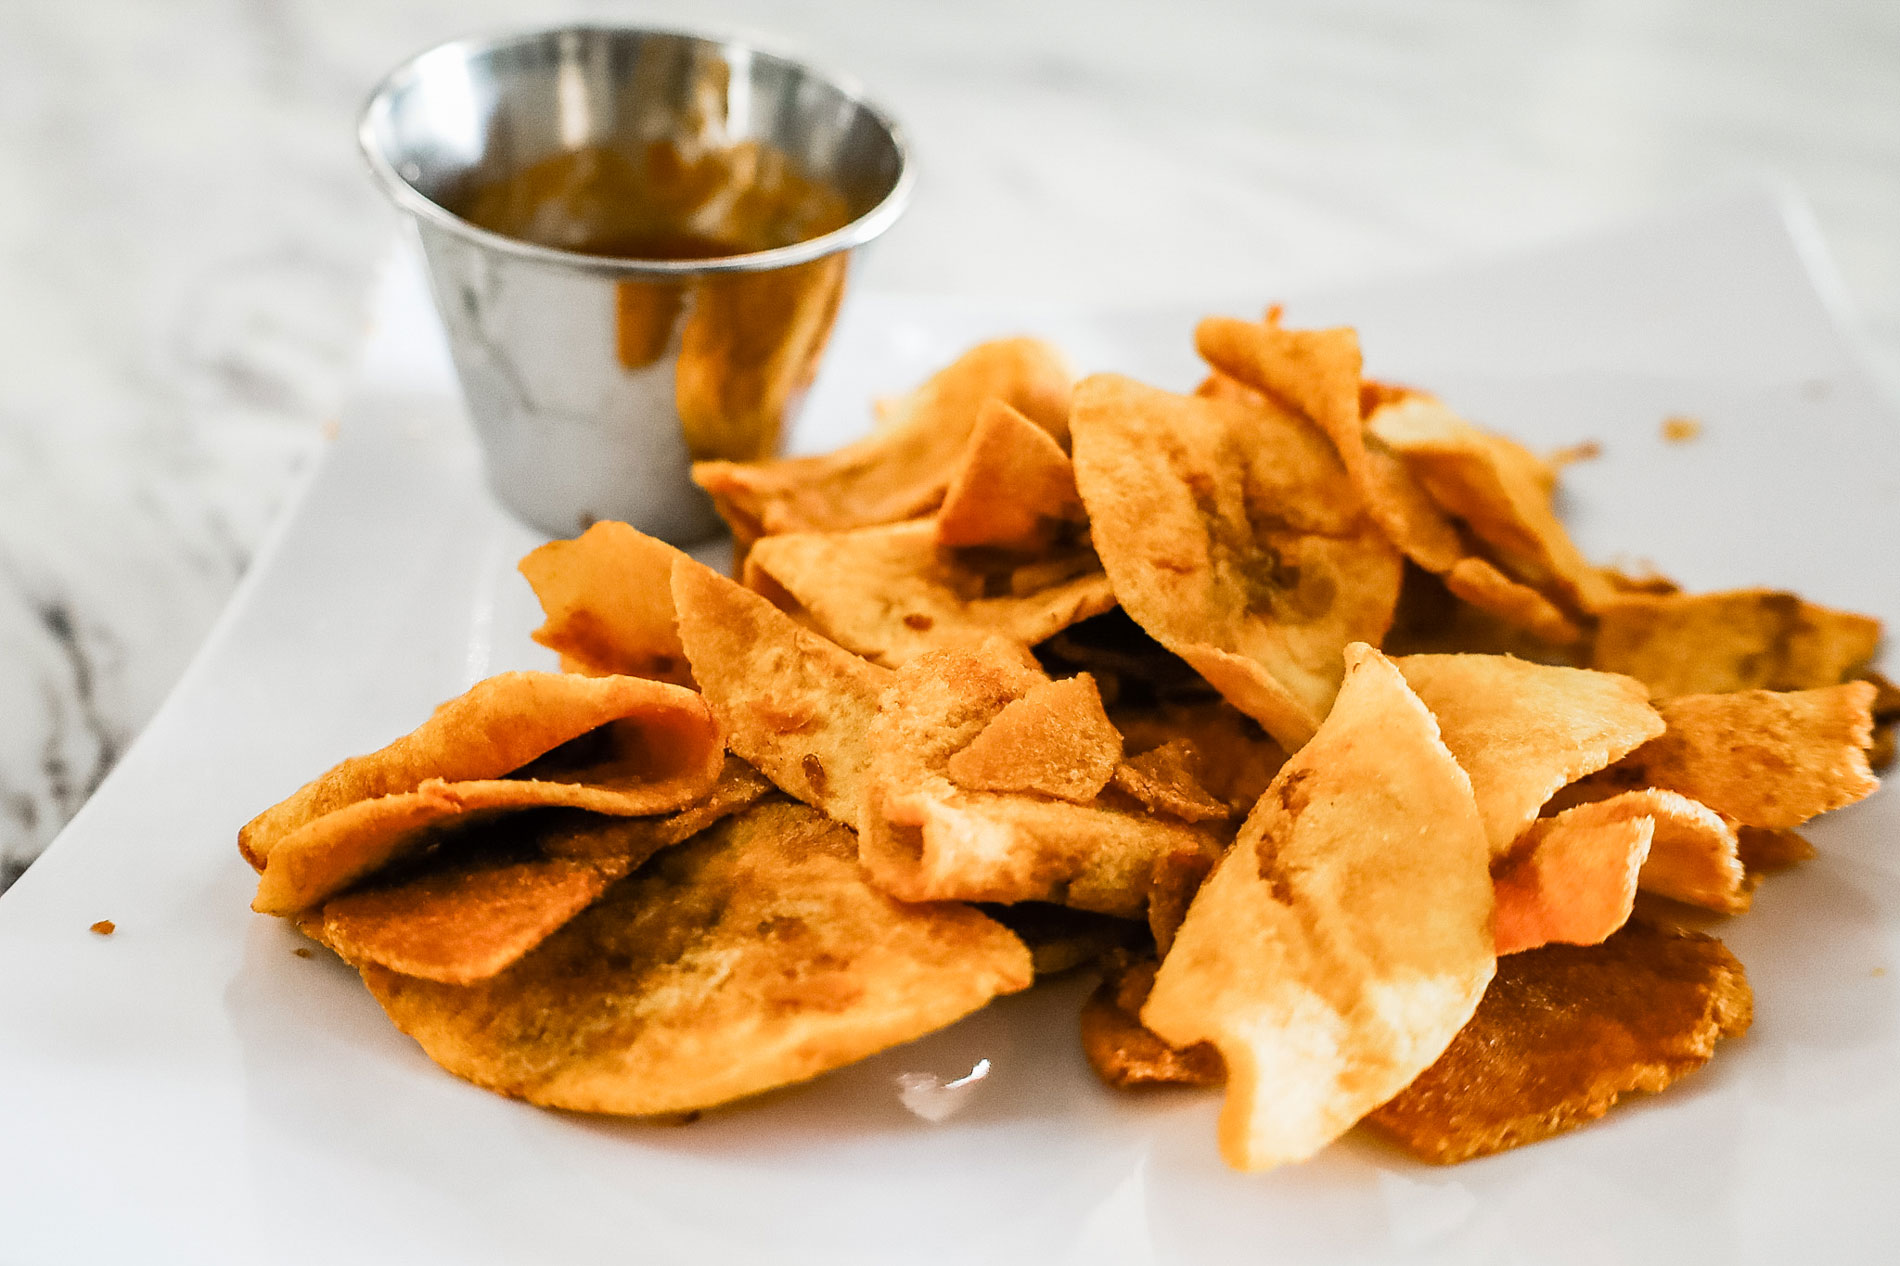 Plantain chips on a white plate.